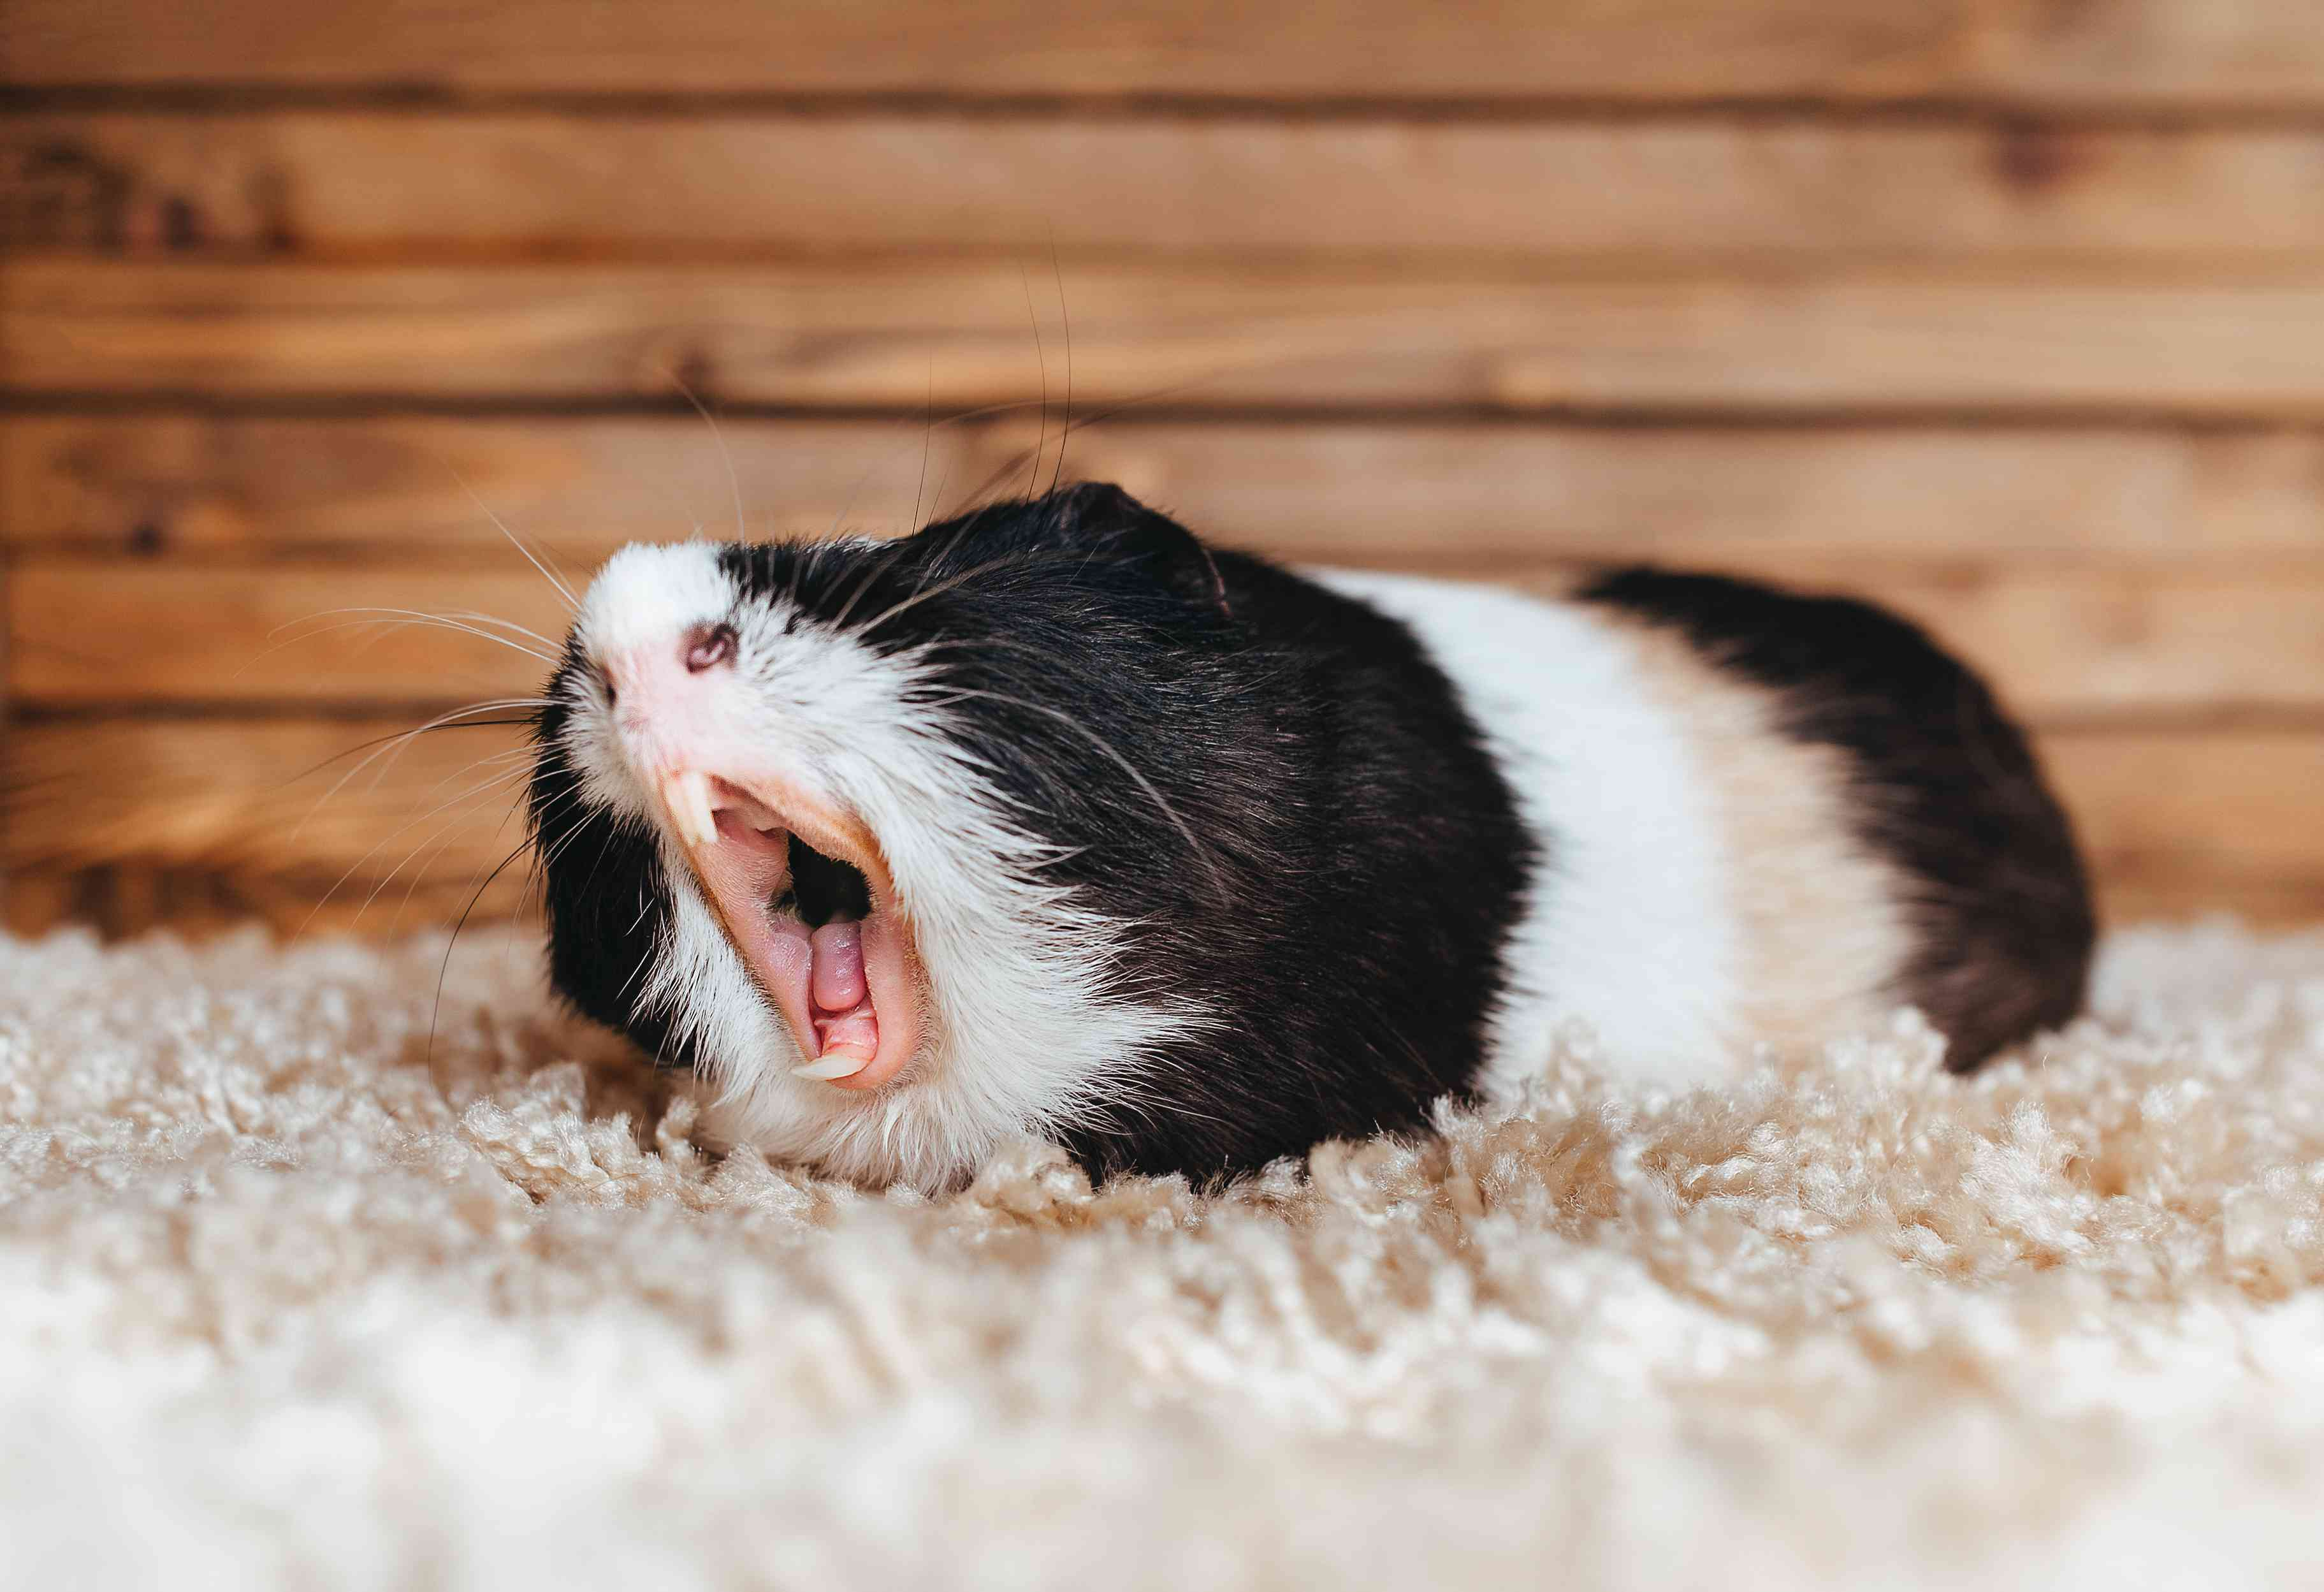 black and white guinea pig yawning and showing its long front teeth